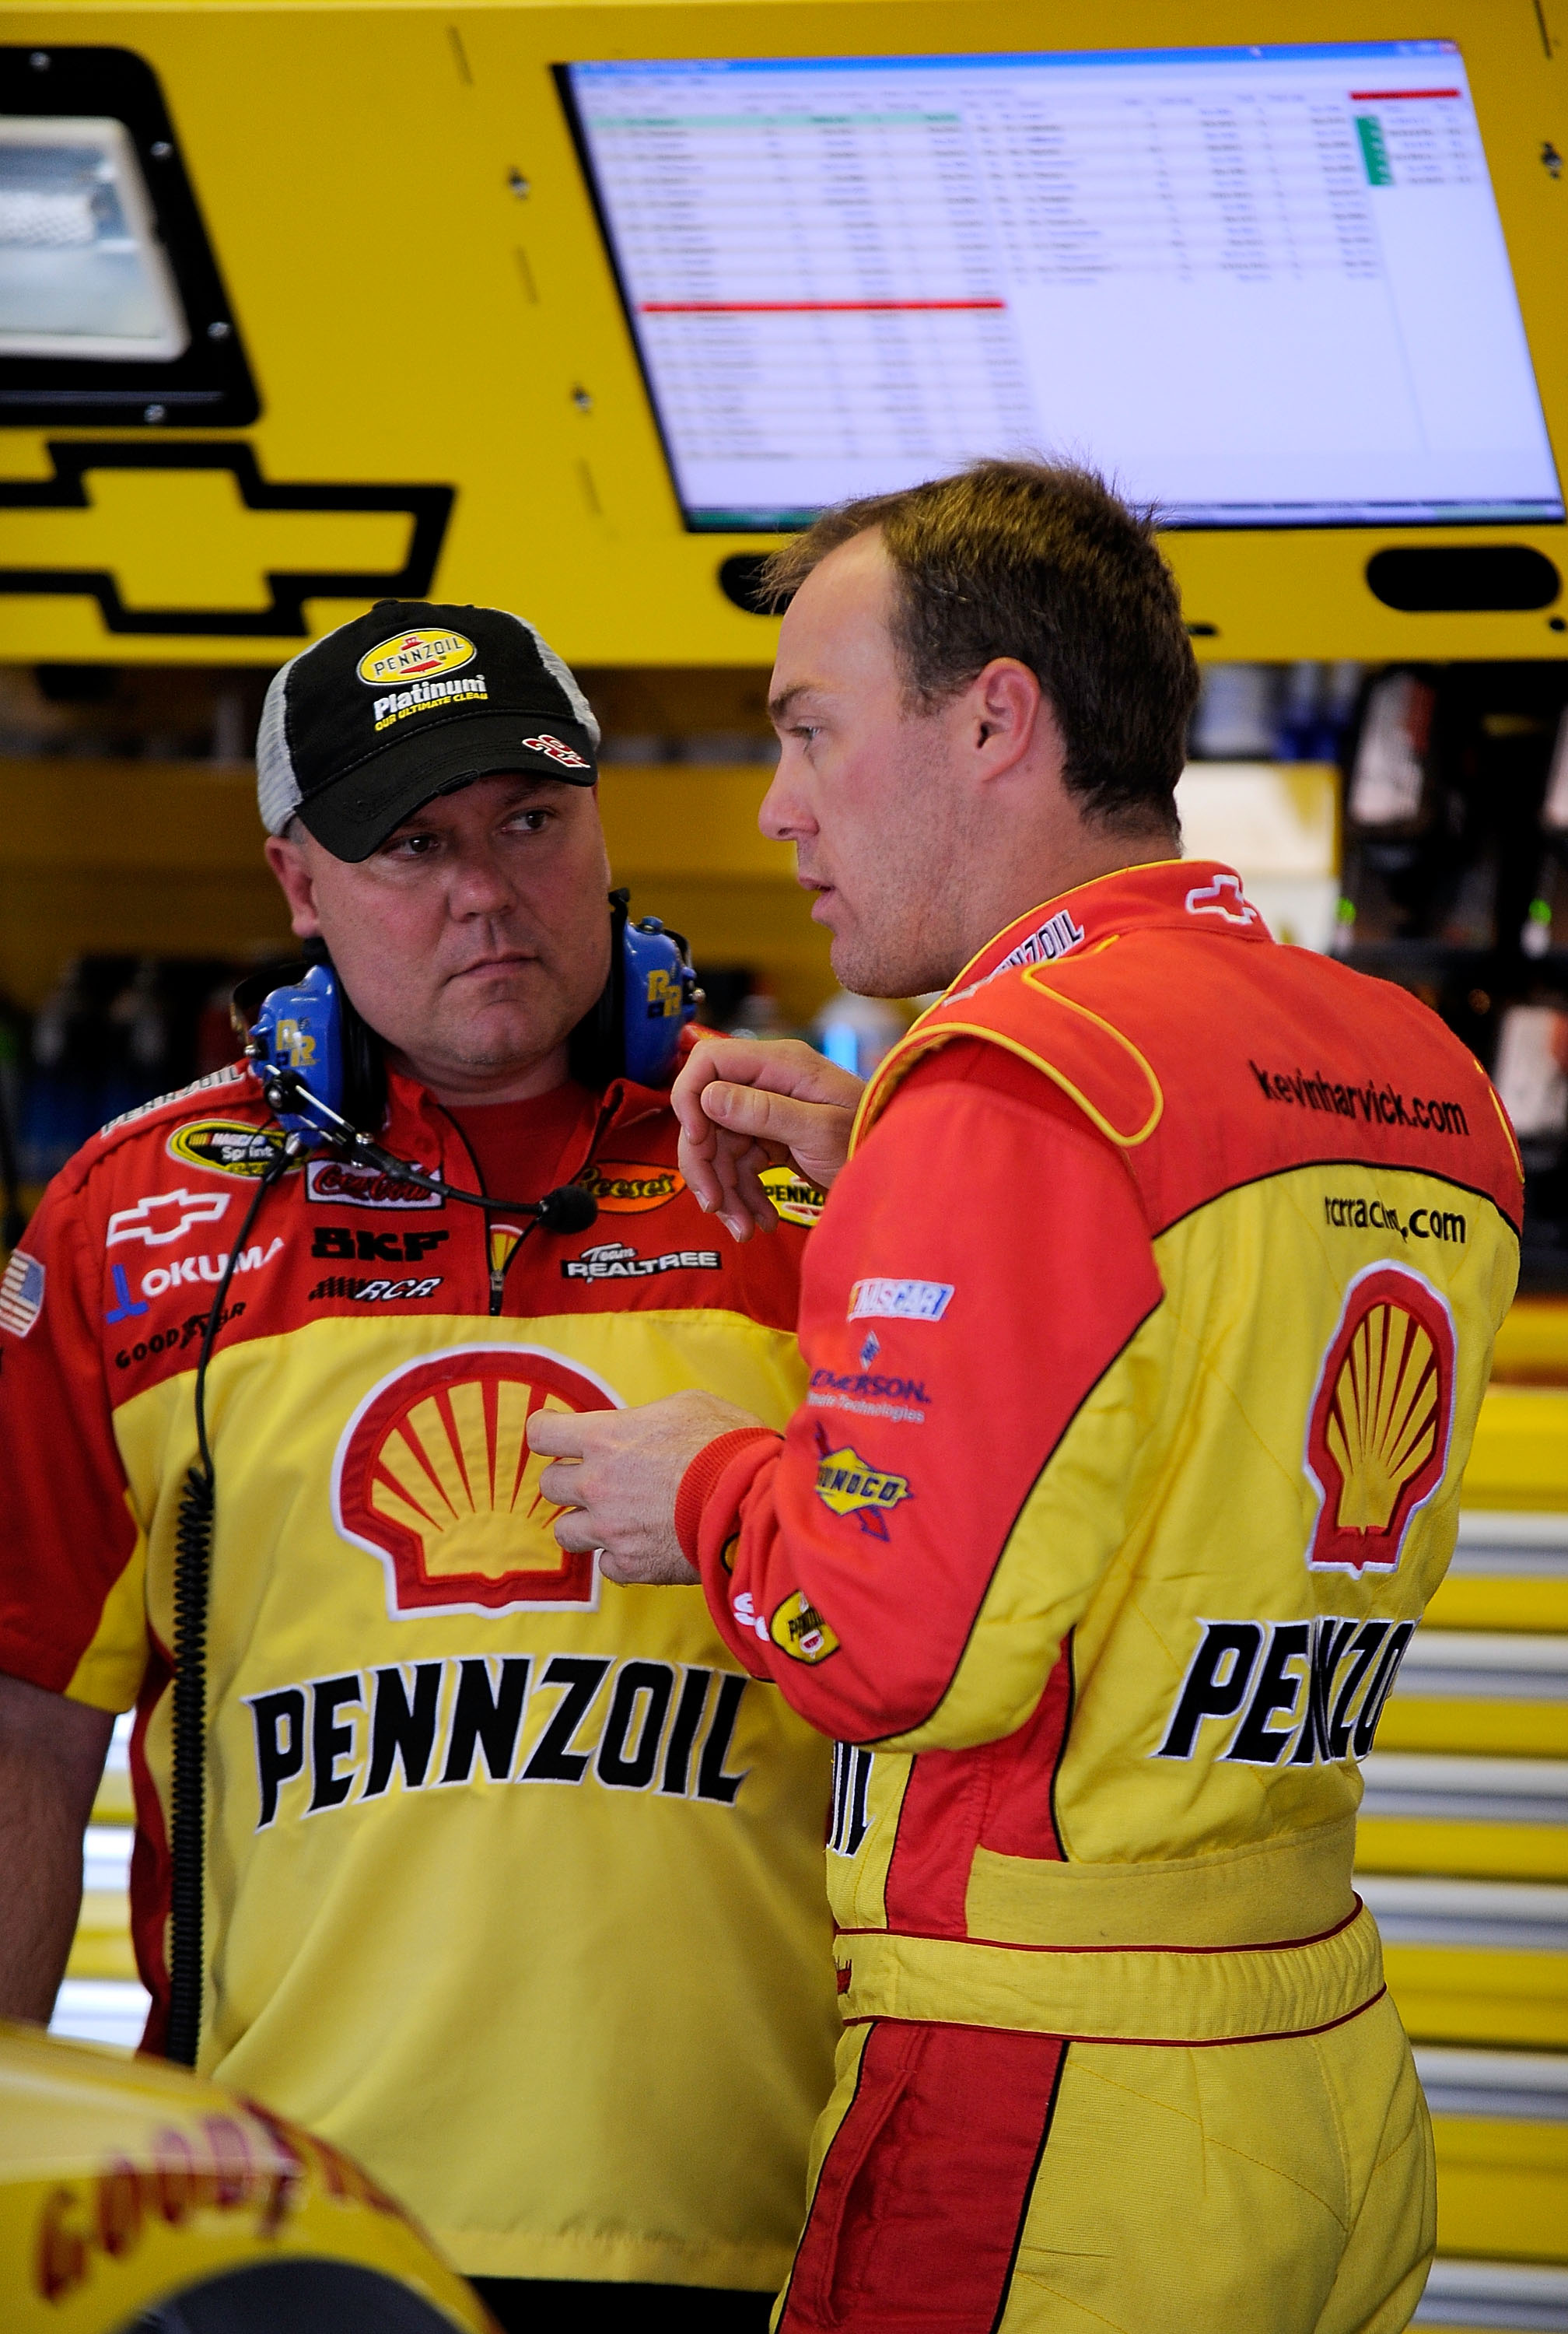 LONG POND, PA - JUNE 04:  Kevin Harvick (R), driver of the #29 Shell/Pennzoil Chevrolet, talks with a crew chief Gil Martin in the garage prior to practice for the NASCAR Sprint Cup Series Gillette Fusion ProGlide 500 at Pocono Raceway on June 4, 2010 in